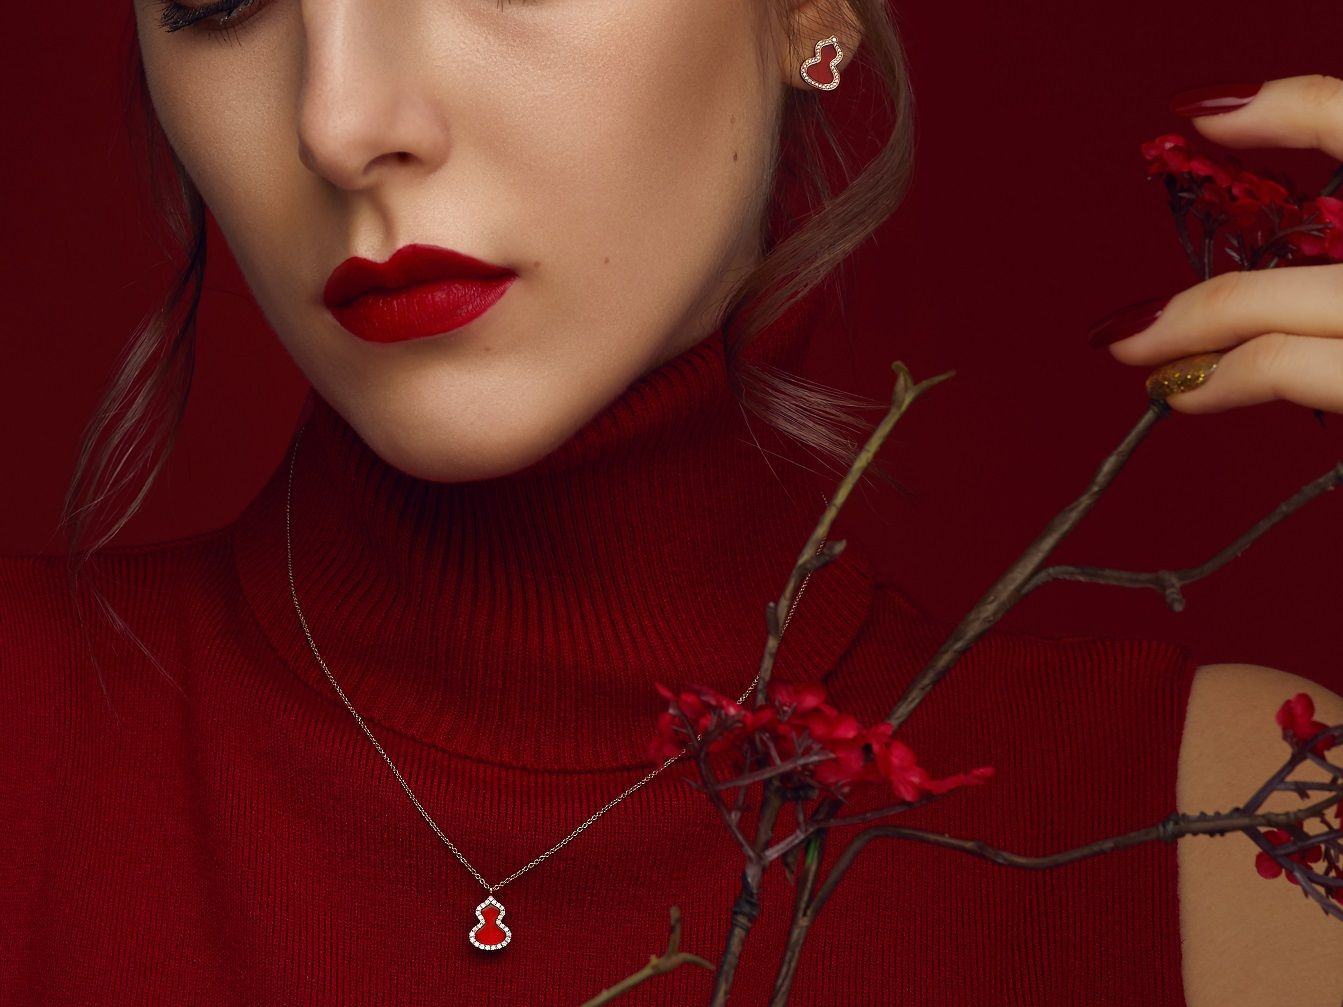 Qeelin Wulu Red Agate pendant and earrings in rose gold set with diamonds and red agate (Photo: Courtesy of Qeelin)